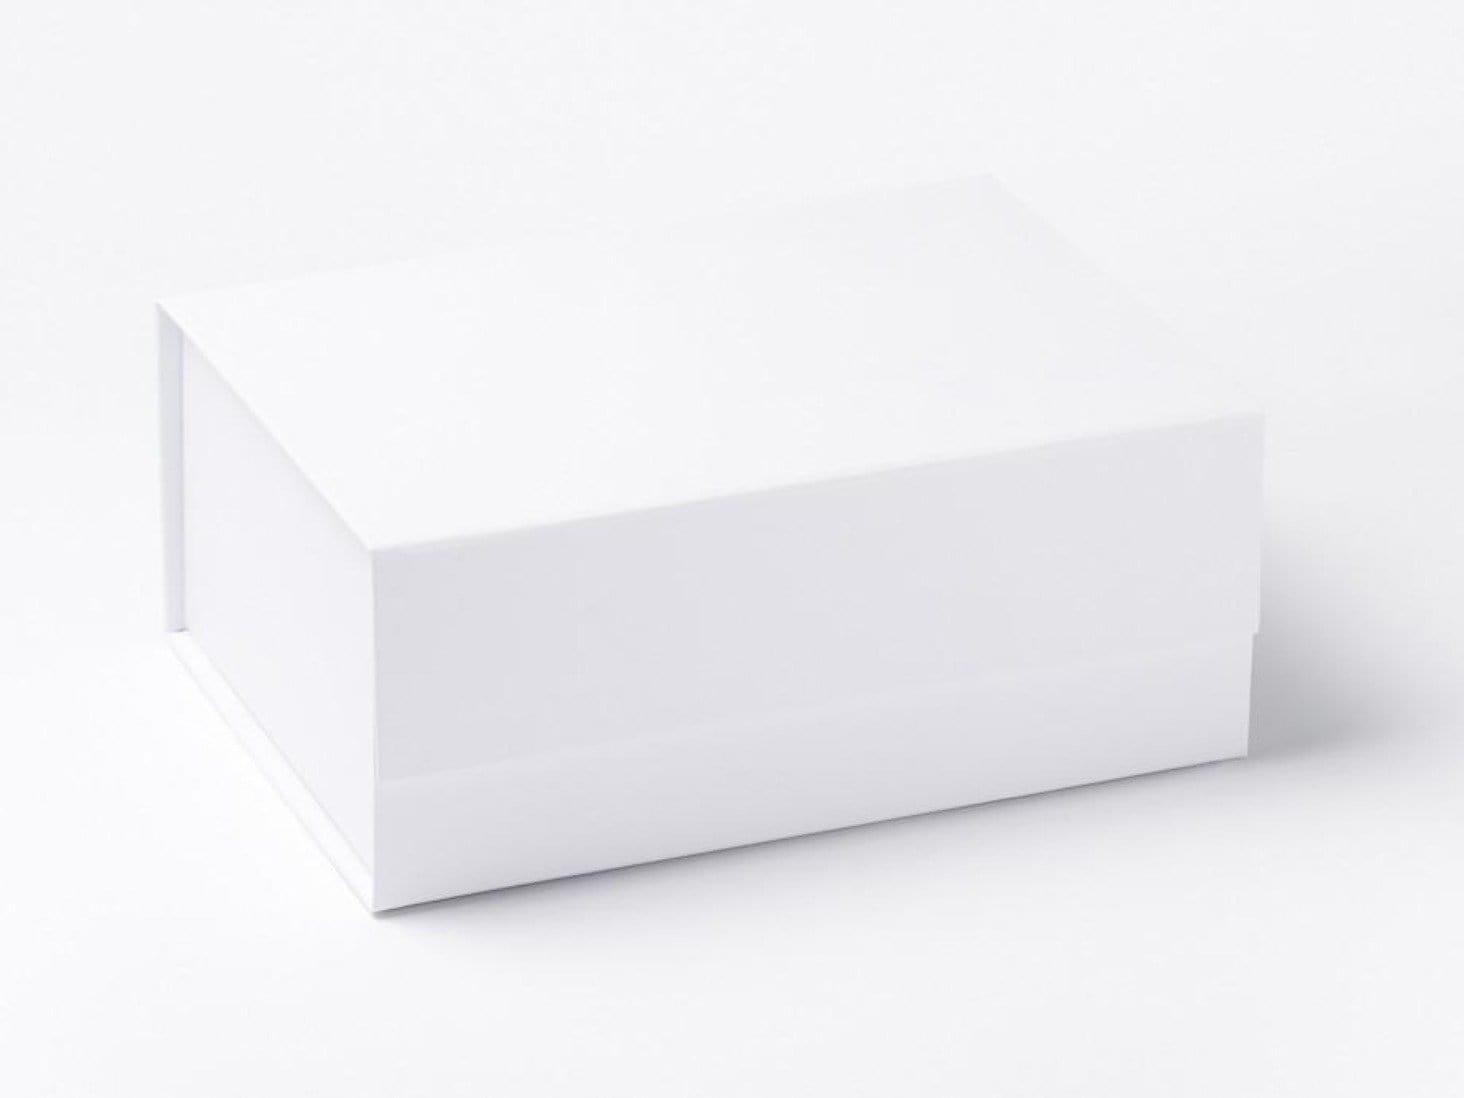 White A5 Deep Folding Gift Box Sample without ribbon